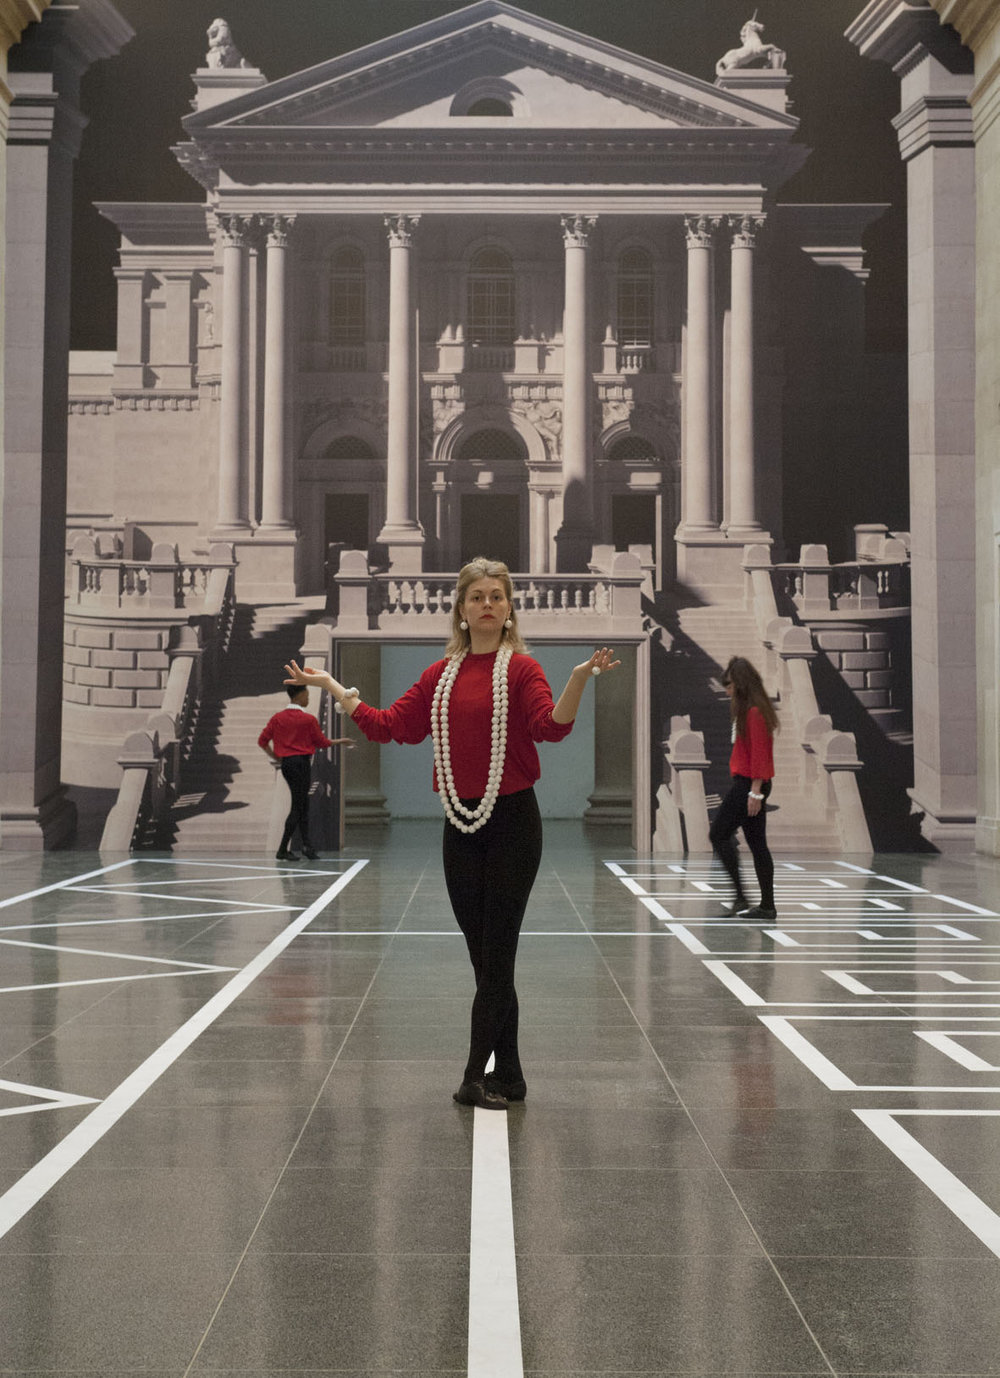 Historical Dances in an Antique setting Installation View Tate Britain 2016